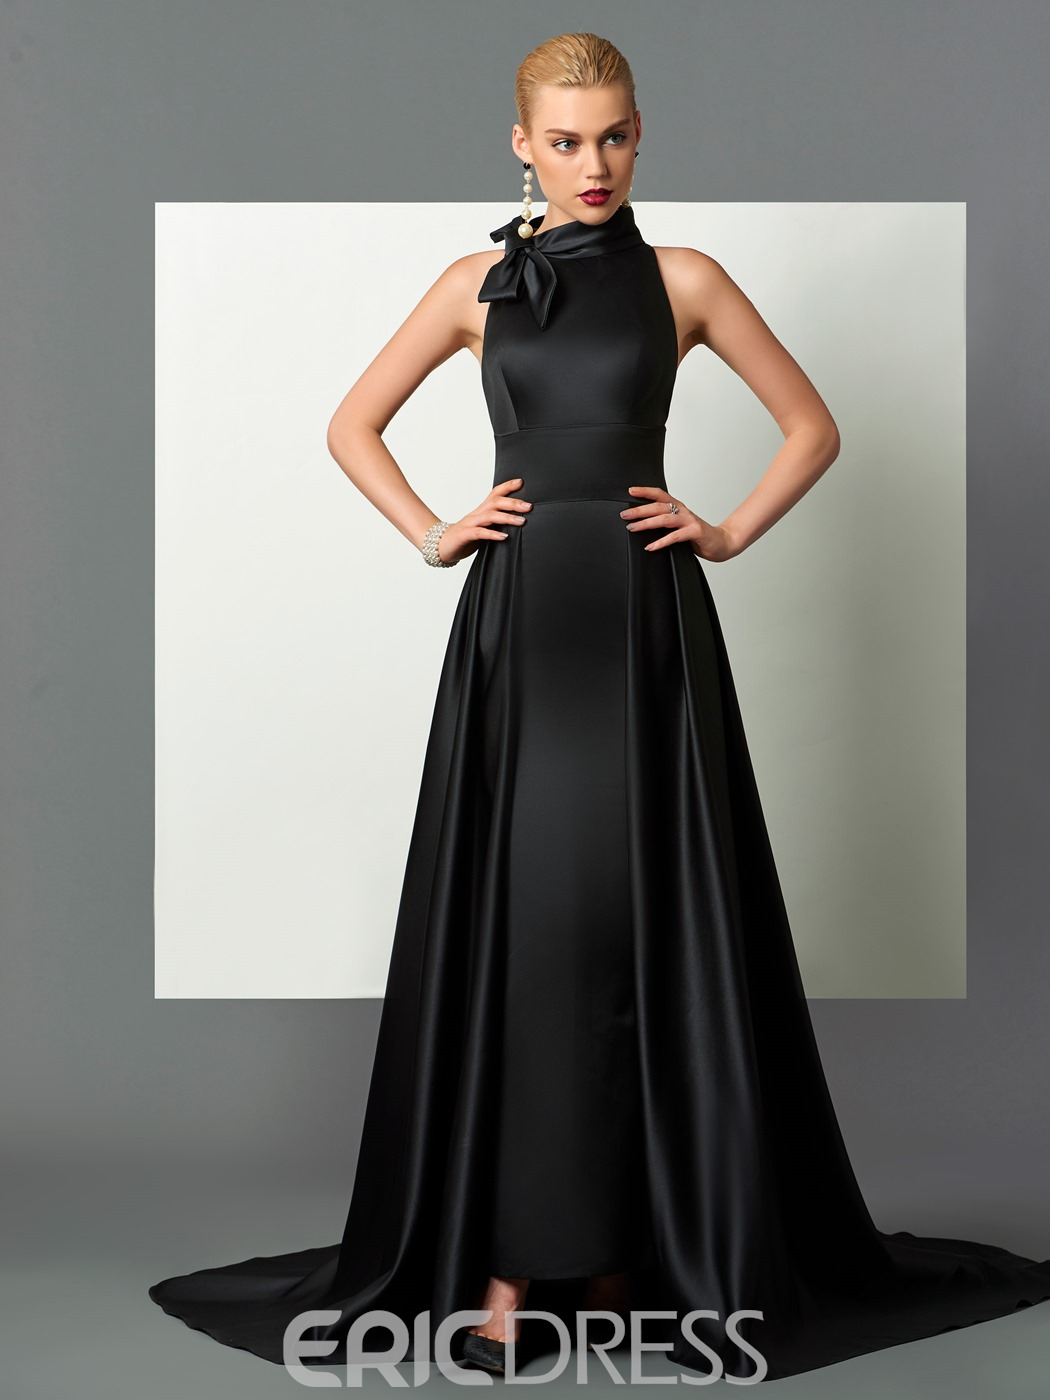 Classic Black Halter Long Evening Dresses